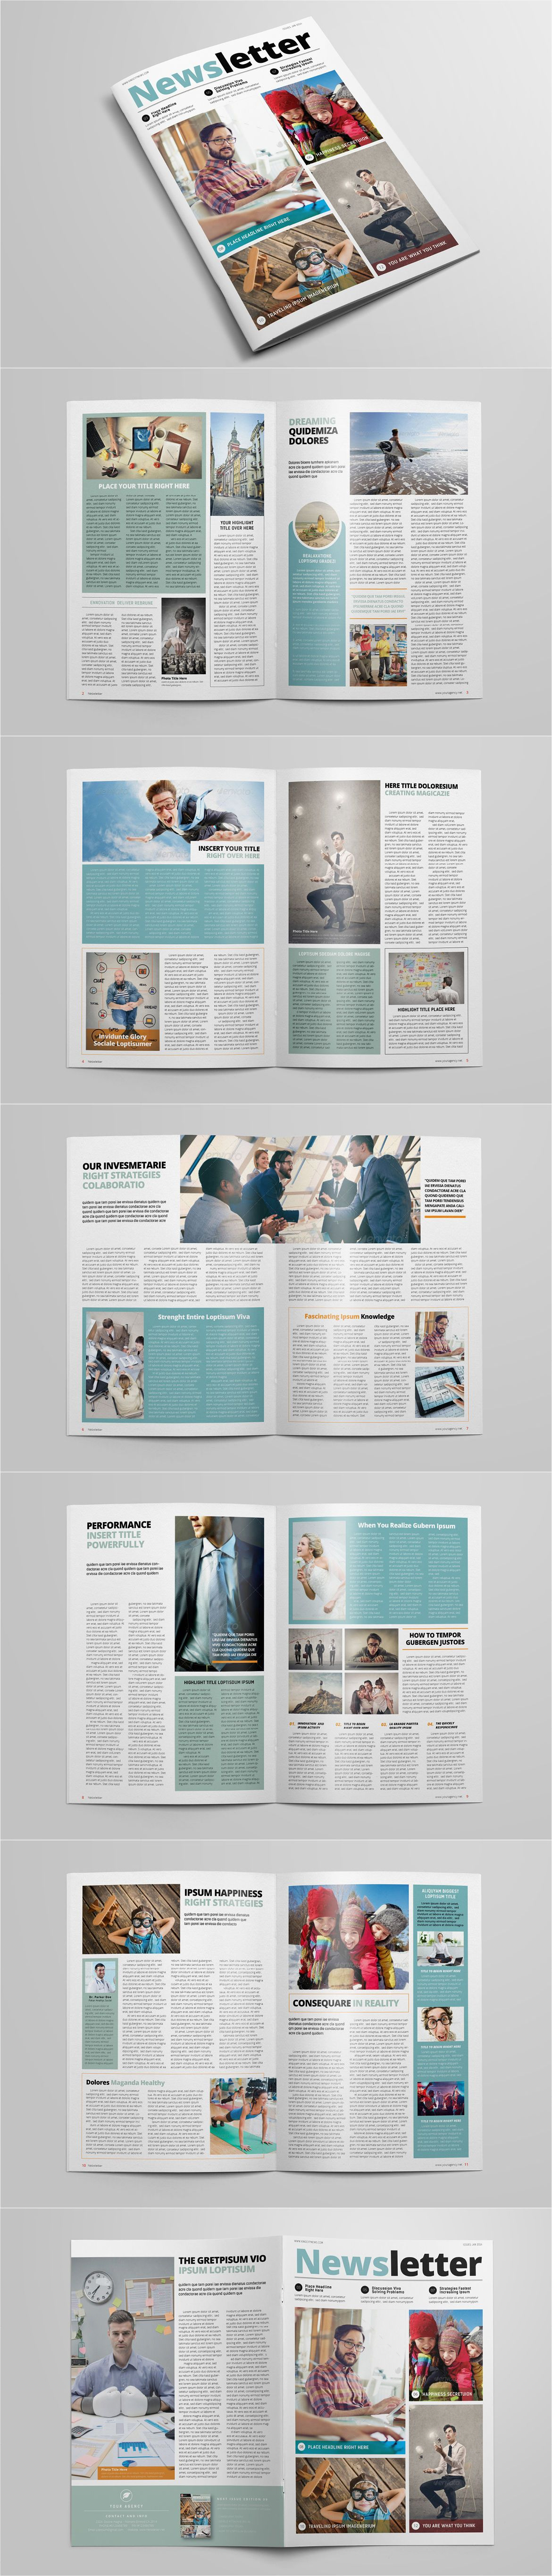 Multipurpose Newsletter Template InDesign INDD | Graphic design ...